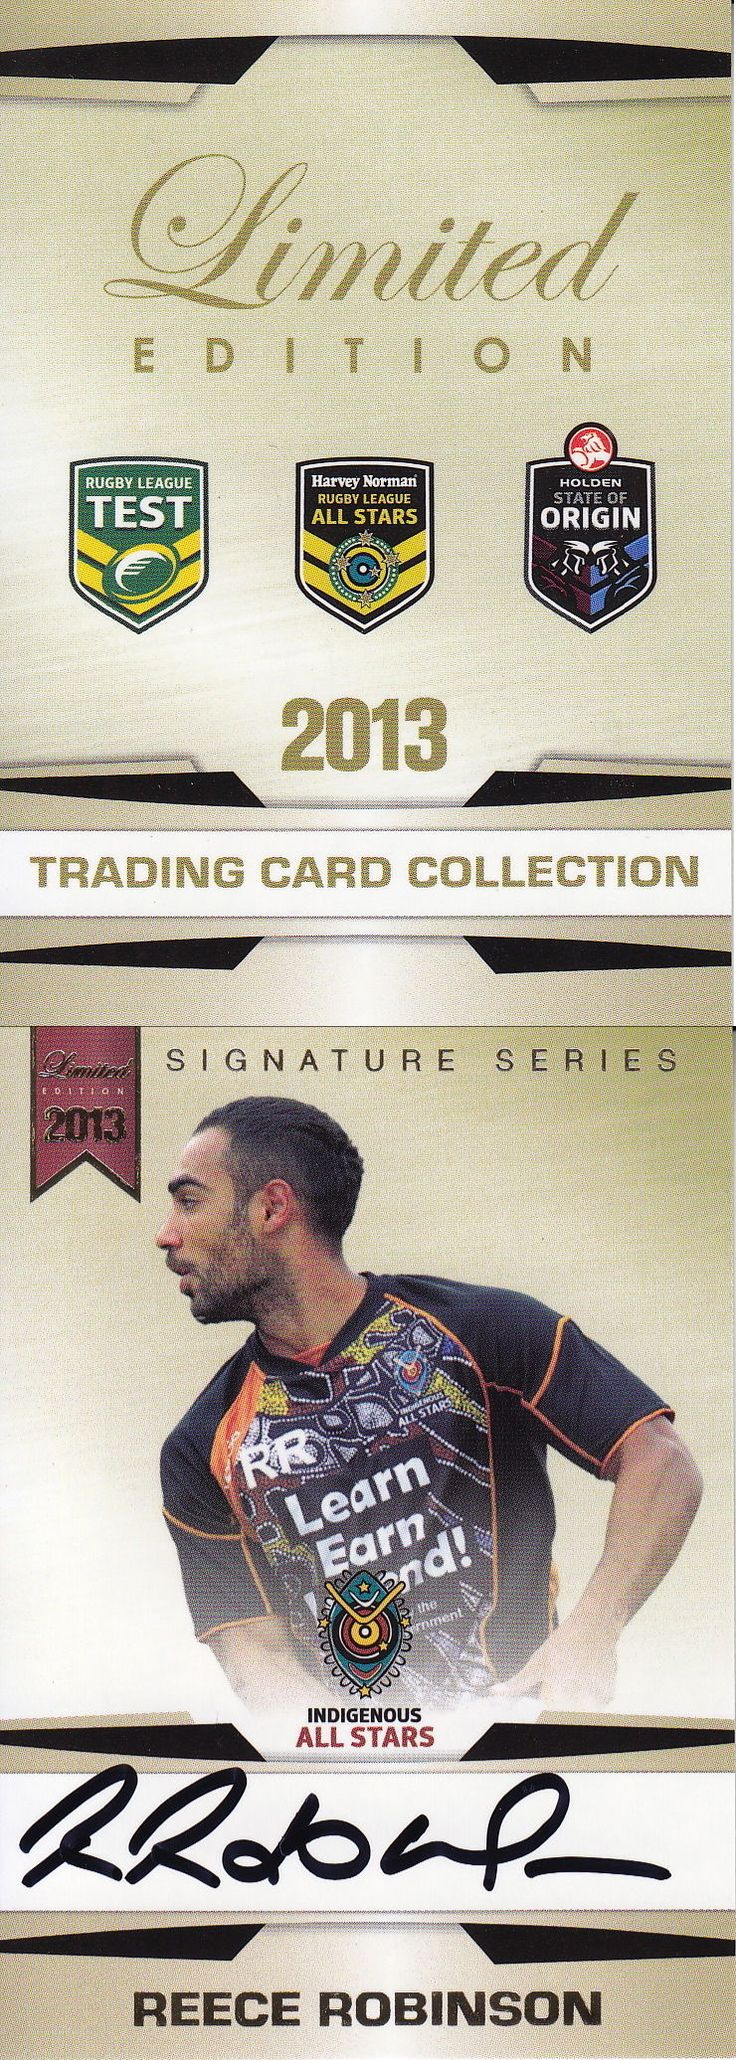 Rugby League NRL Cards 25583: Nrl - 2013 Rugby Trading Card Collection Signature Set ~ Reece Robinson # 167 -> BUY IT NOW ONLY: $59.99 on eBay!